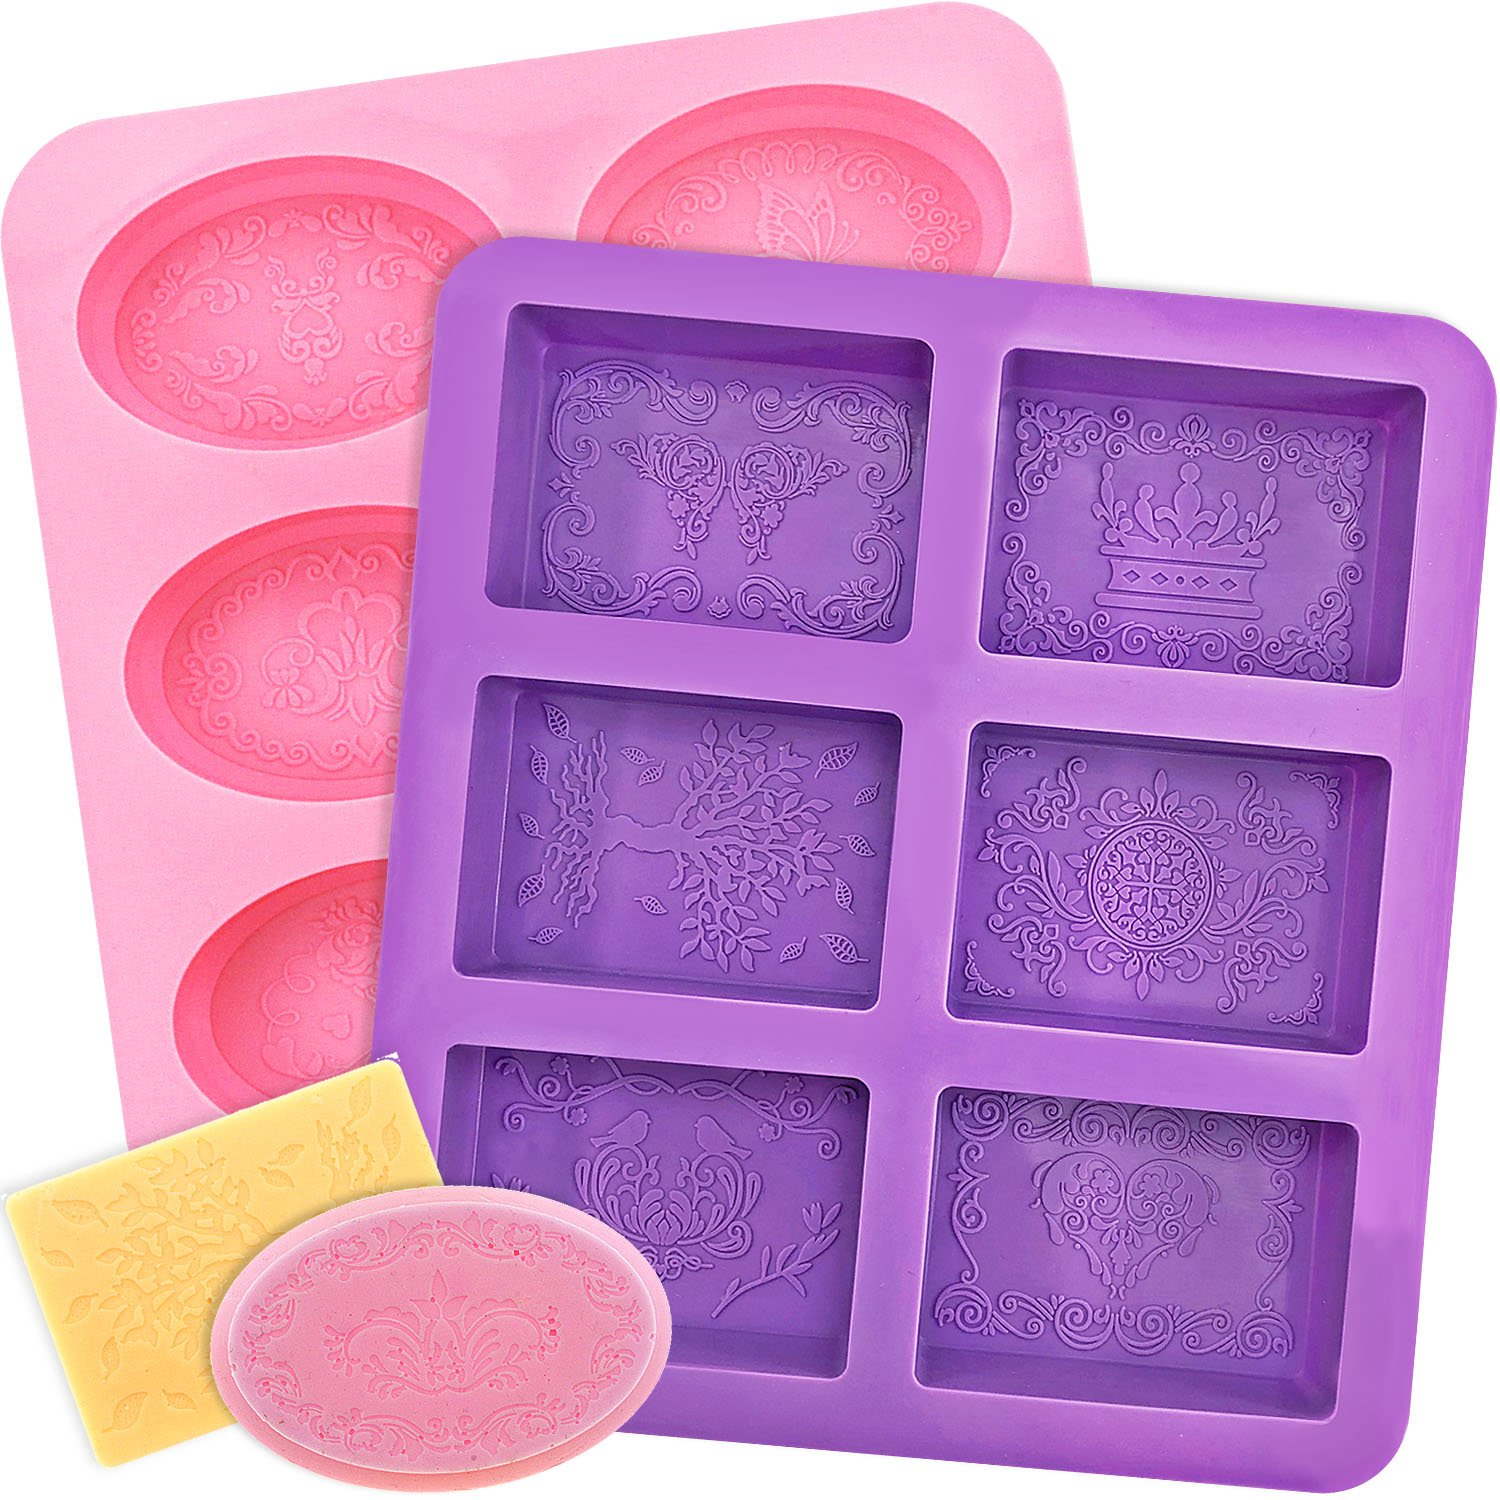 YGEOMER Silicone Soap Mold, 2pcs 6-Cavity Square and Oval Baking Molds for Making Soaps, Ice Cubes, Jelly (Purple & Pink, Square & Oval) by YGEOMER